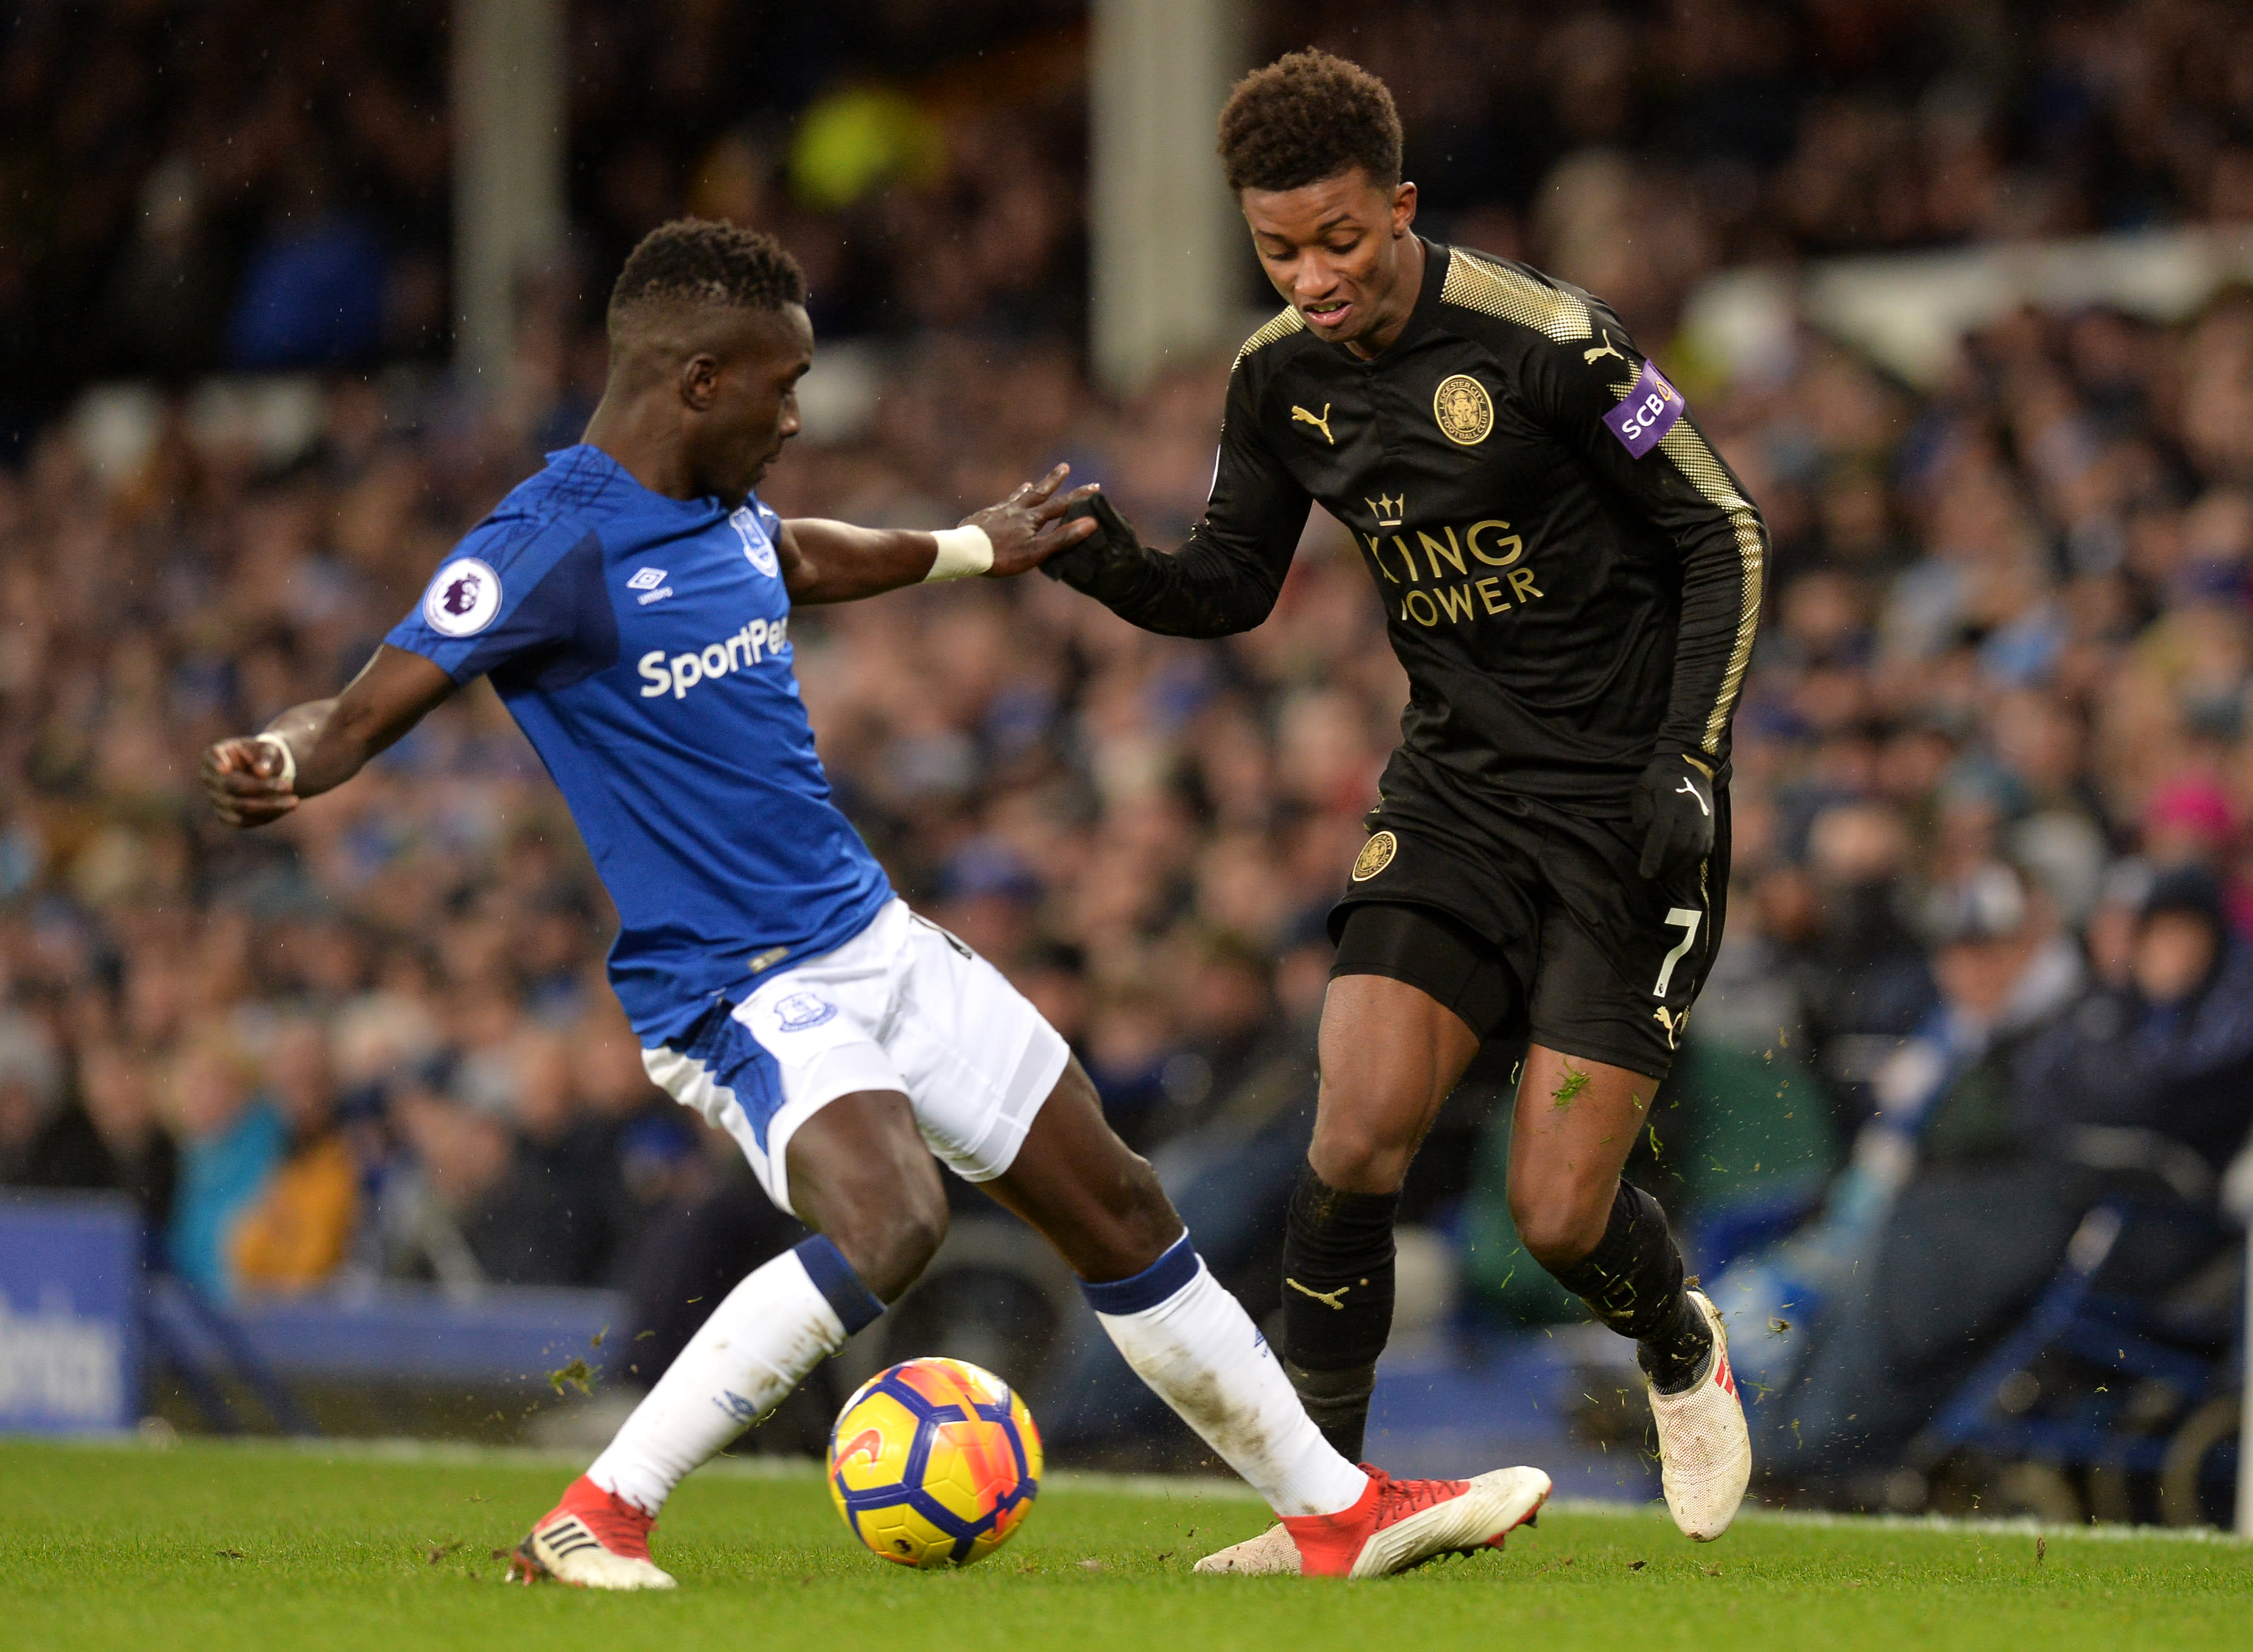 Swansea vs leicester betting preview how to bet on nhl